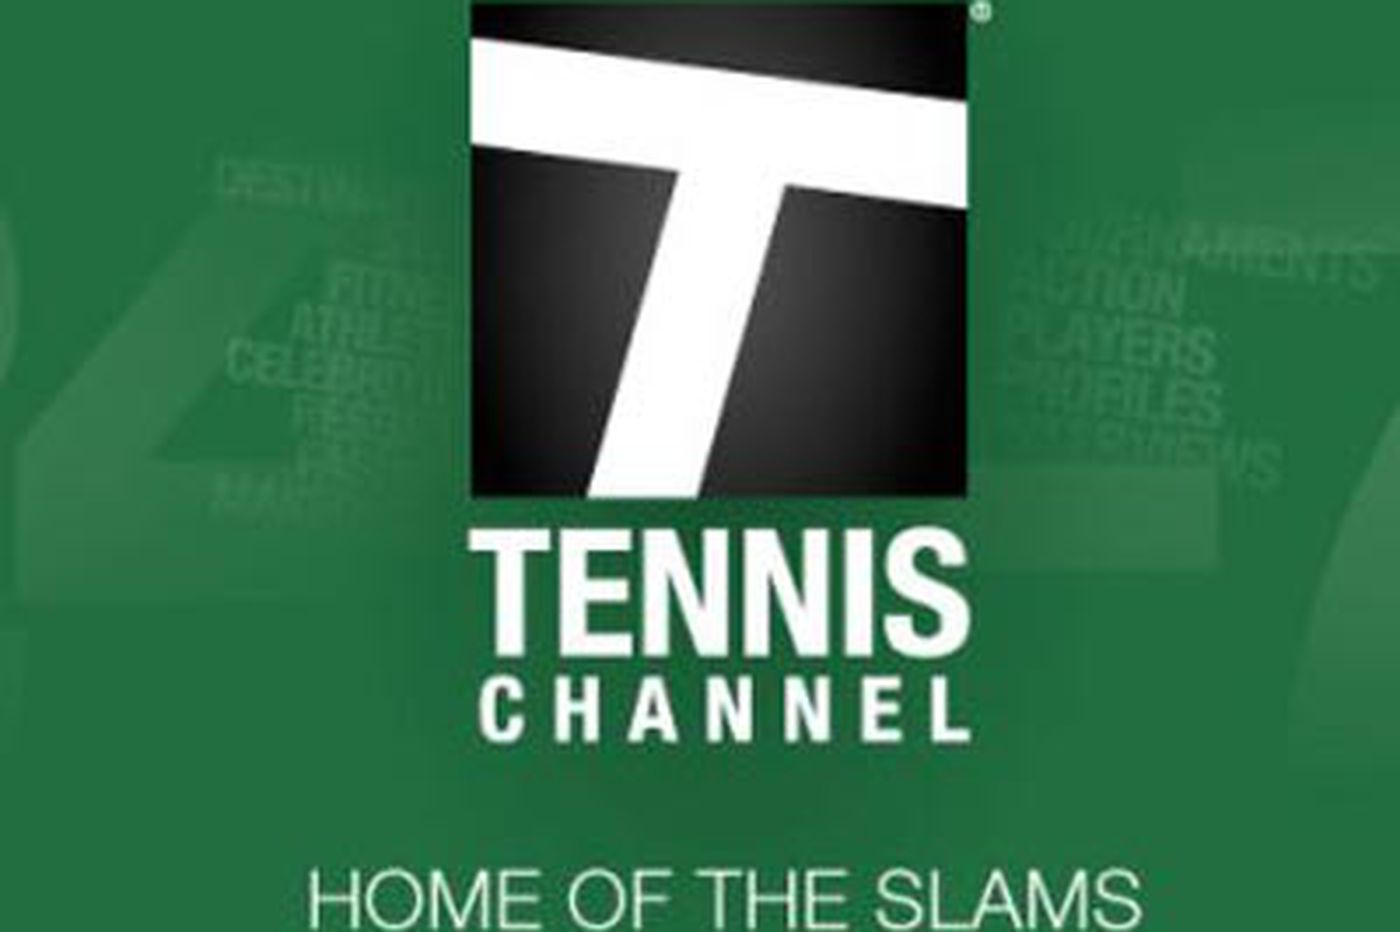 Court serves defeat to Tennis Channel in Comcast match